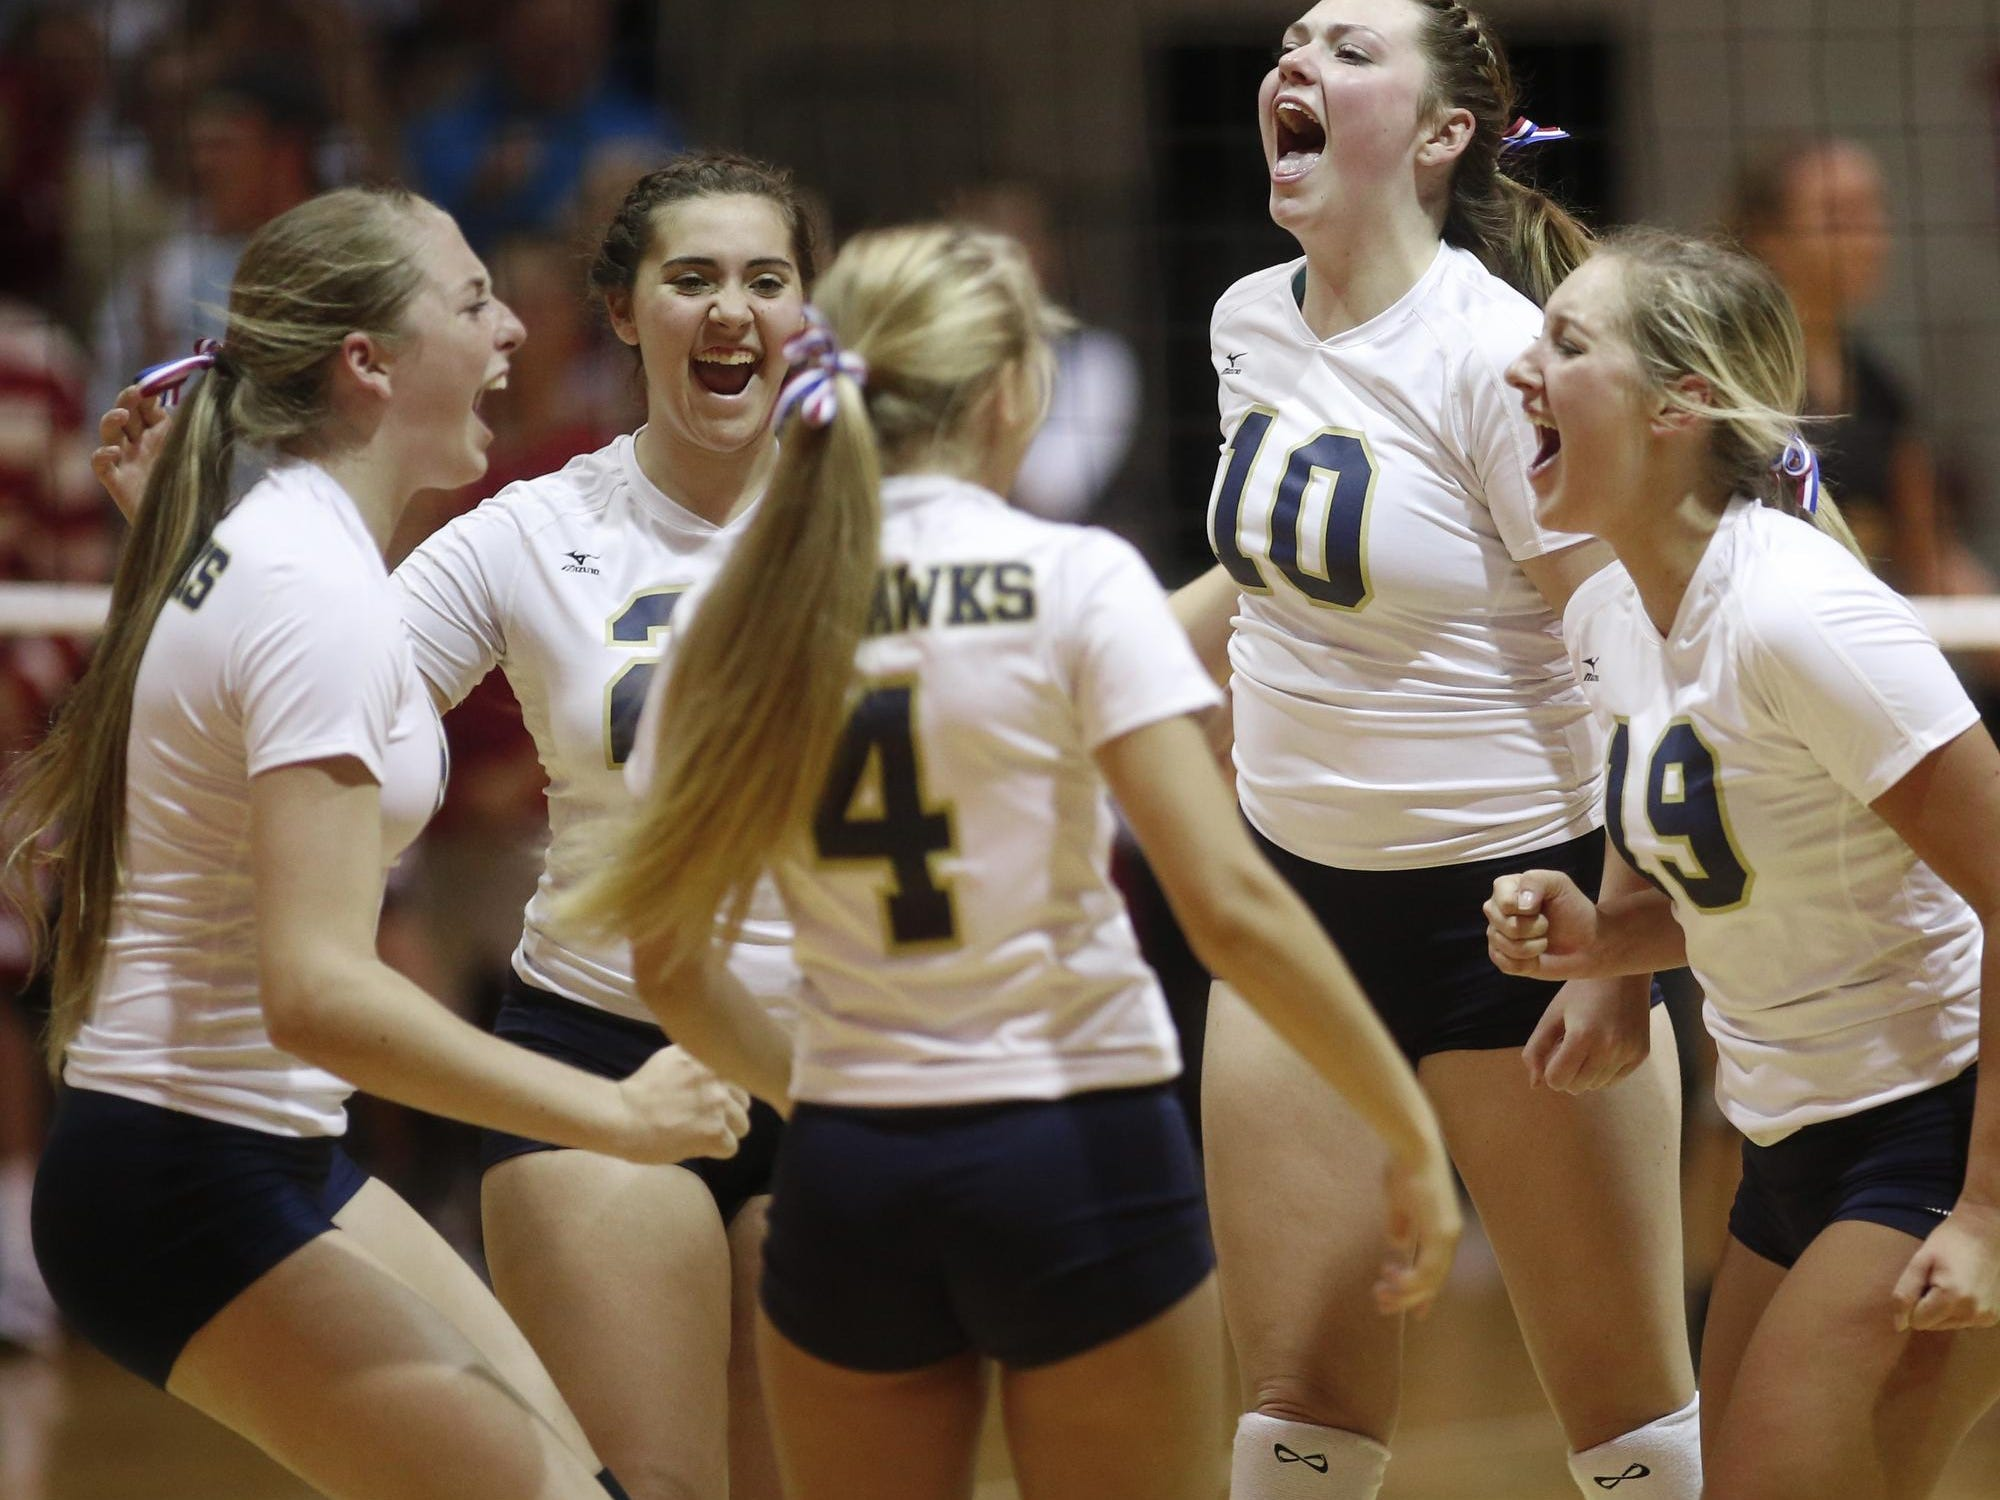 The Delaware Military Academy volleyball team pulled off a 3-1 victory against Padua on Thursday night.